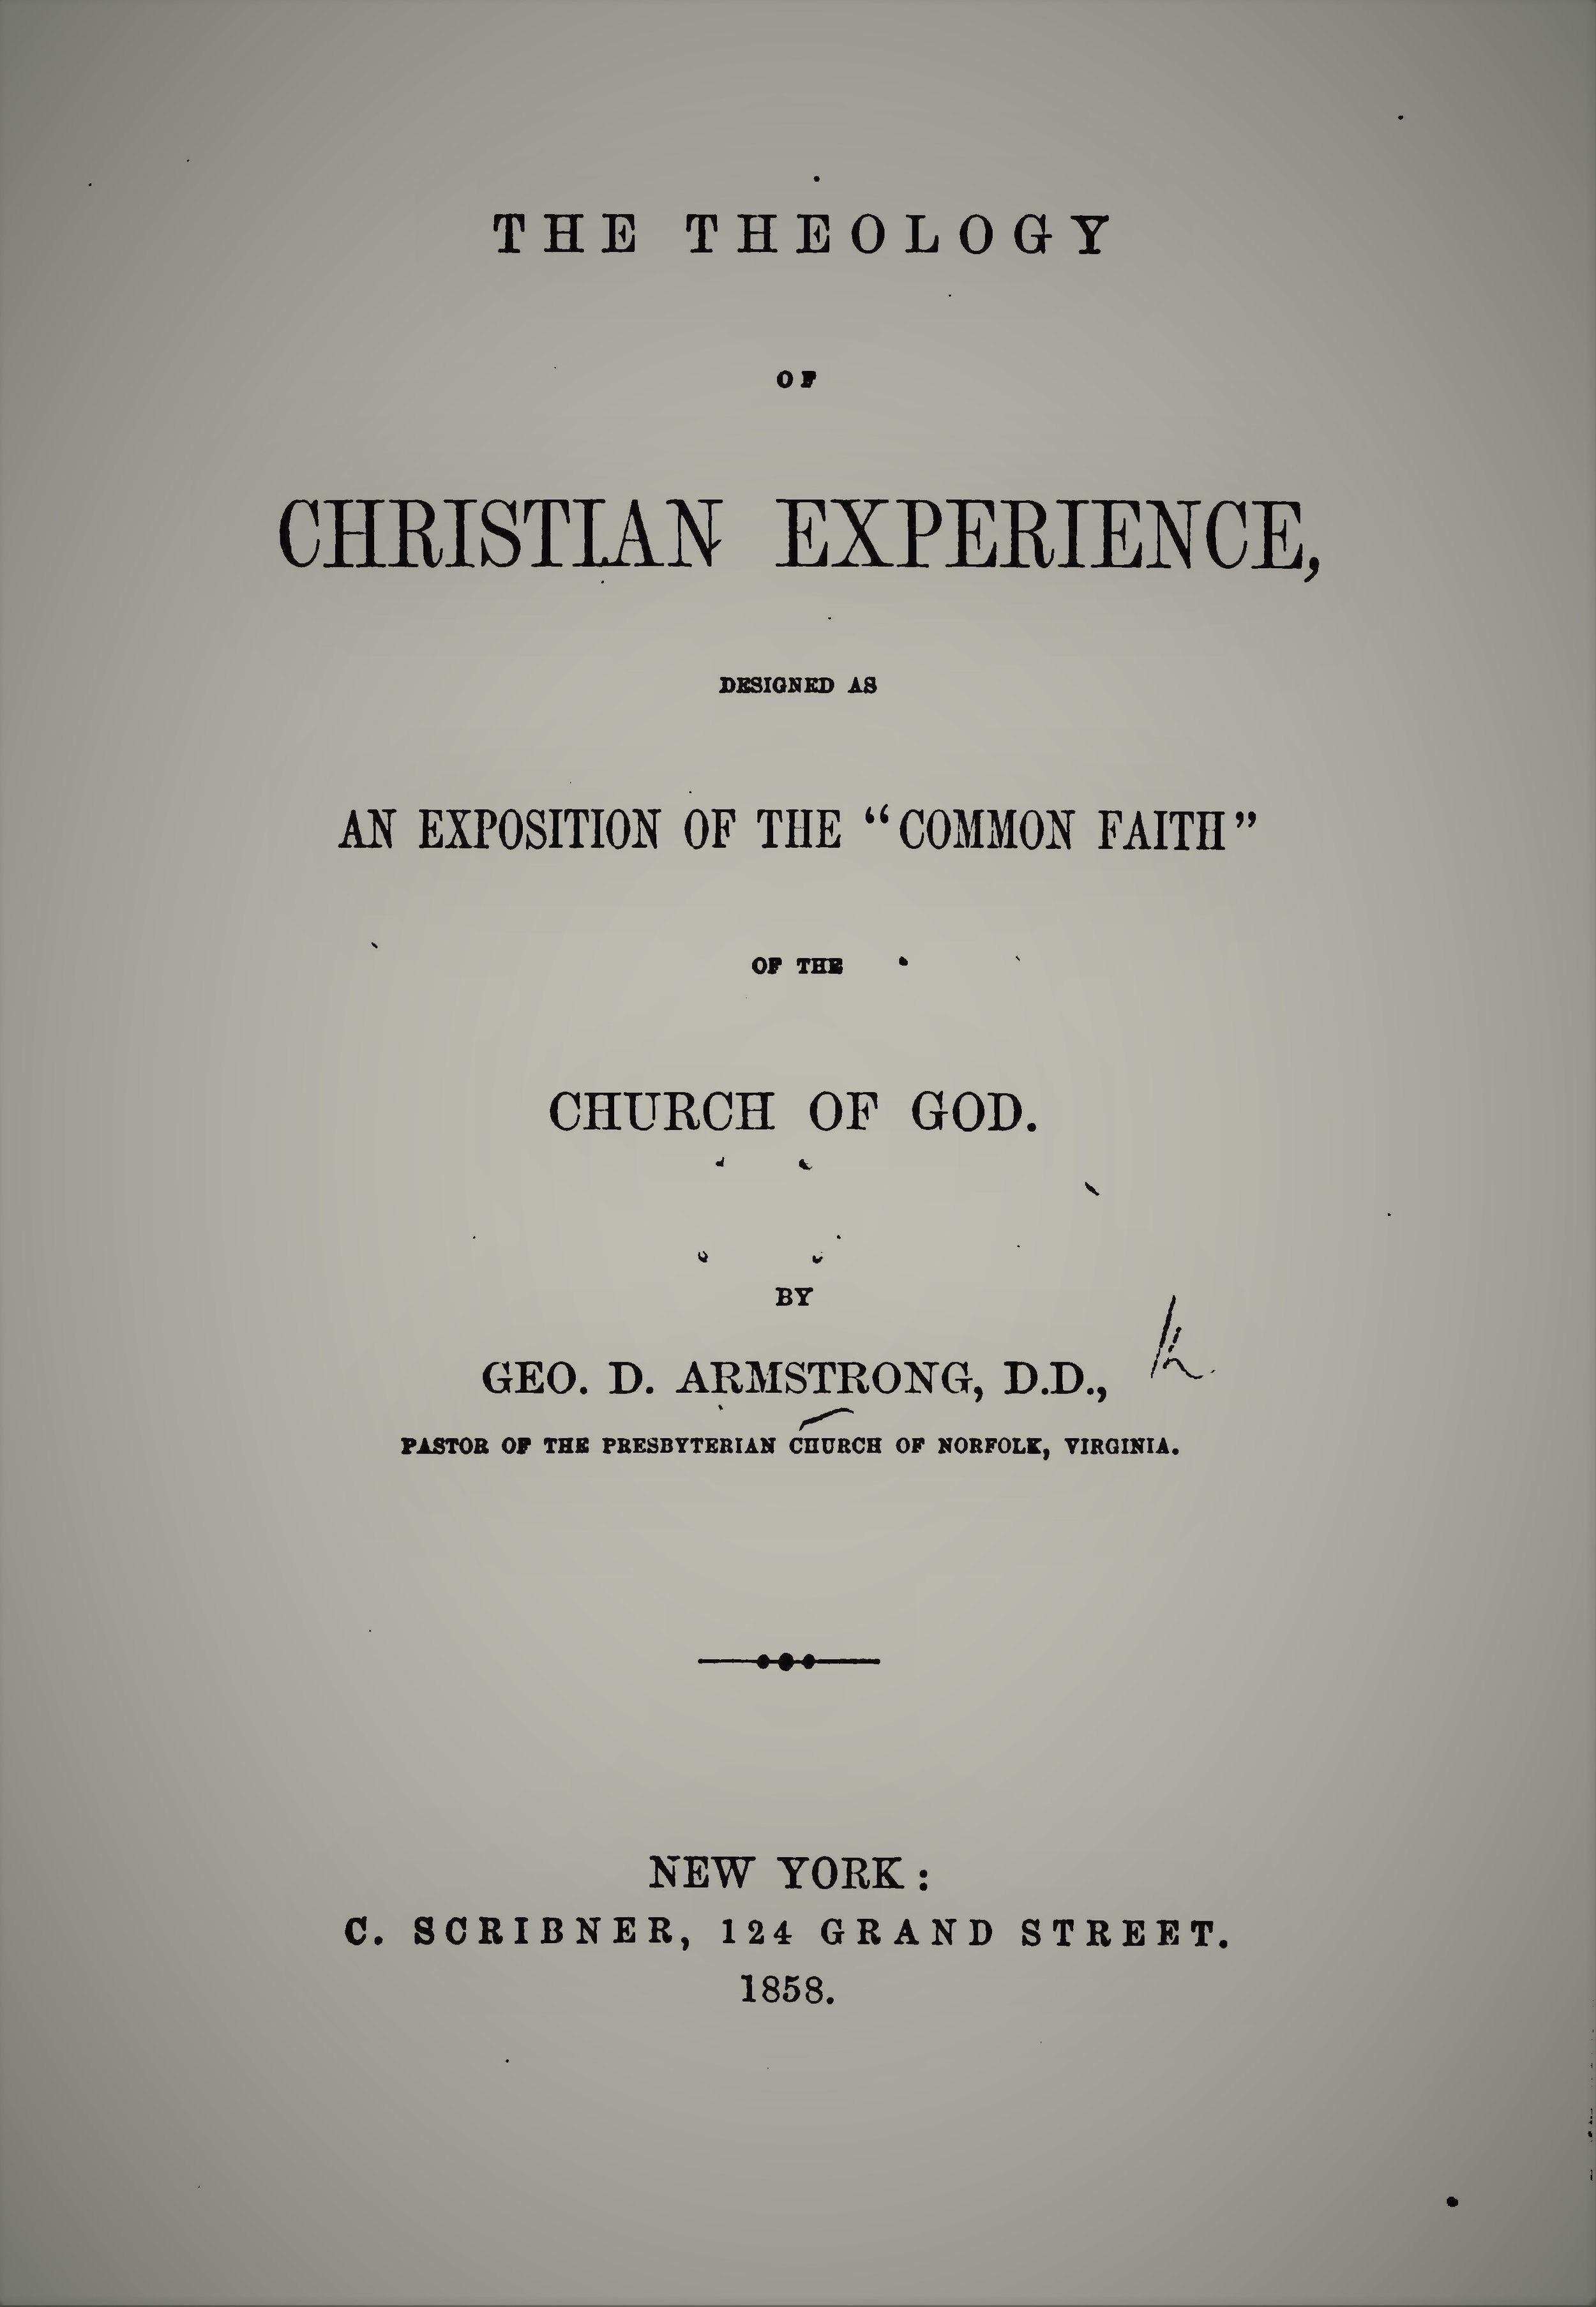 Armstrong, George D - Theology of Christian Experience.jpg